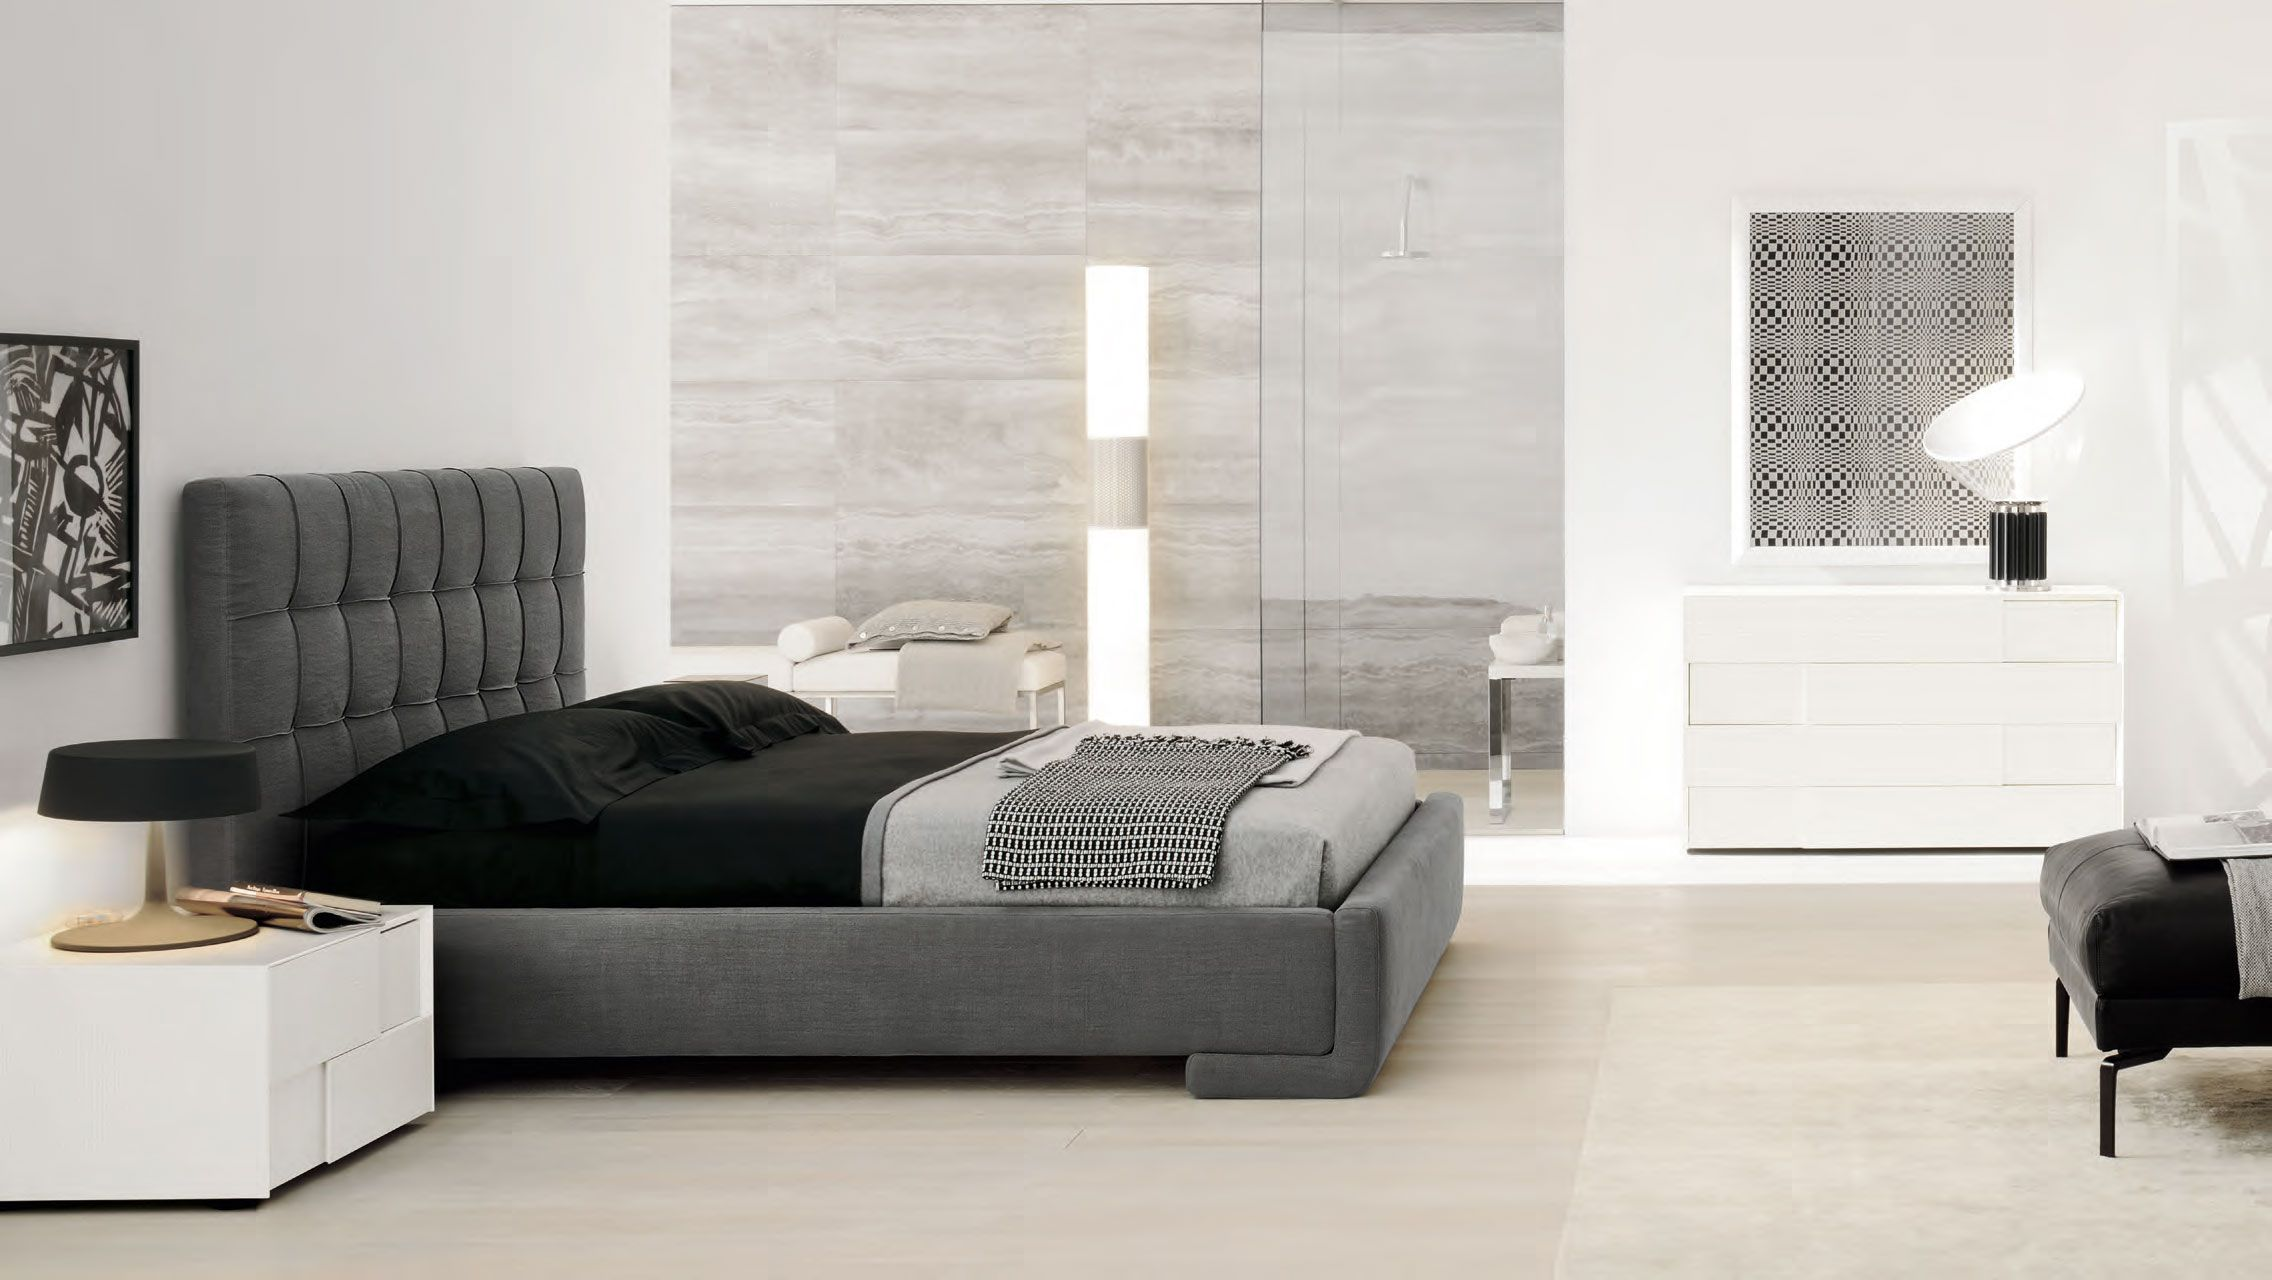 Modern Bedroom Walls Modern Bedroom Interior Design Bedroom Sets Colors For